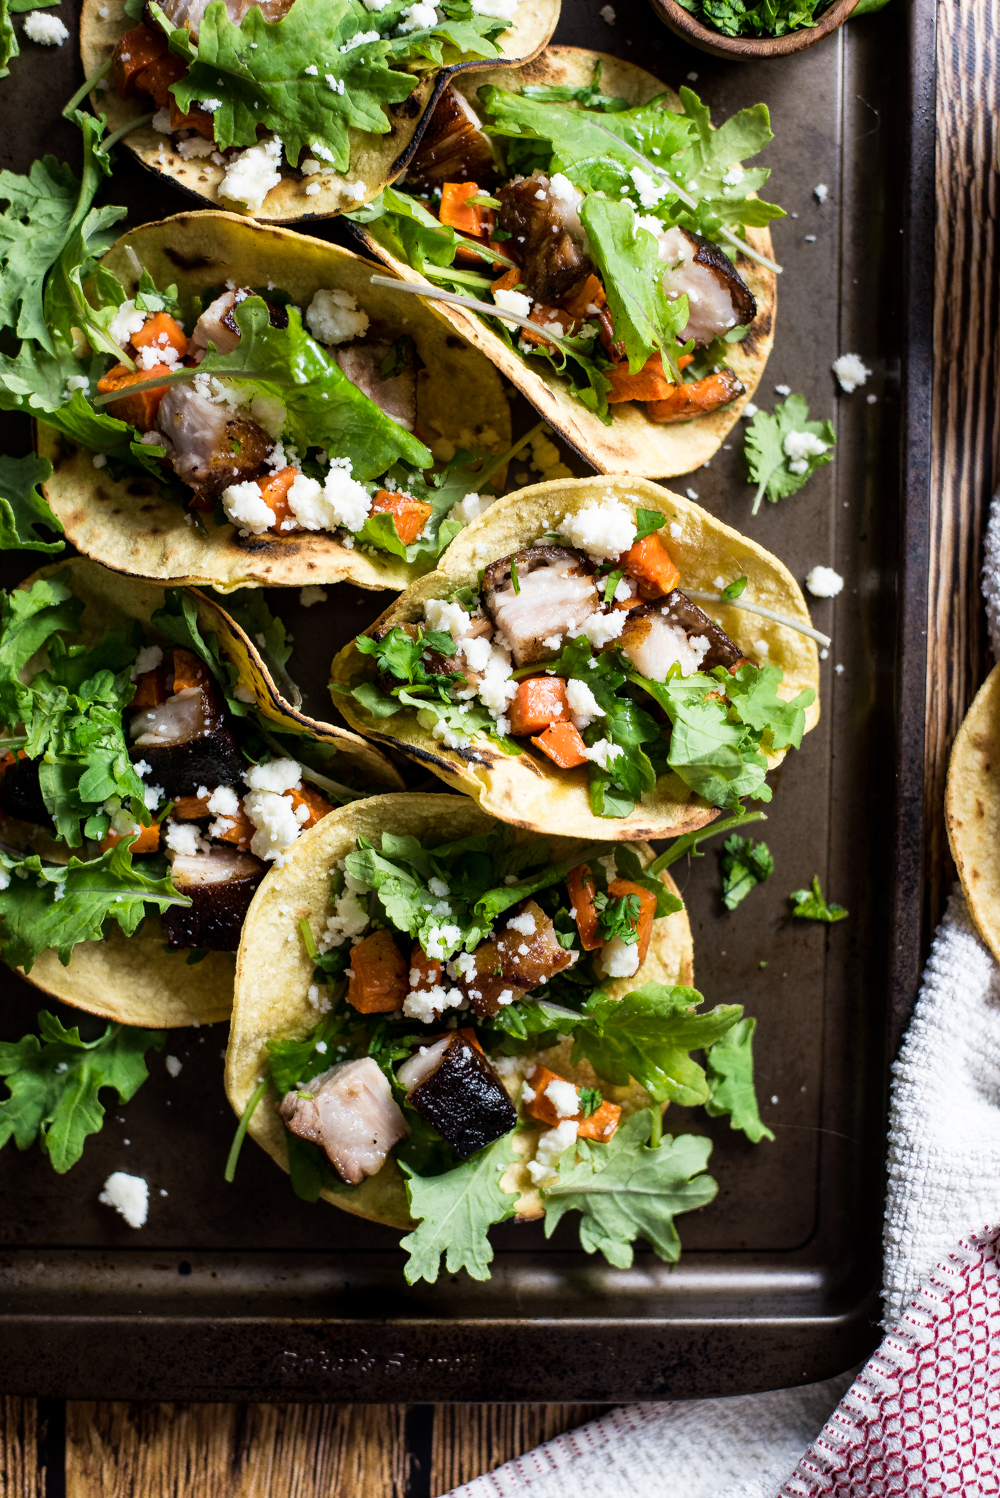 Take your taco Tuesday up a notch, and make these braised pork belly and sweet potato tacos! Crispy, tender pork belly really makes these tacos shine!